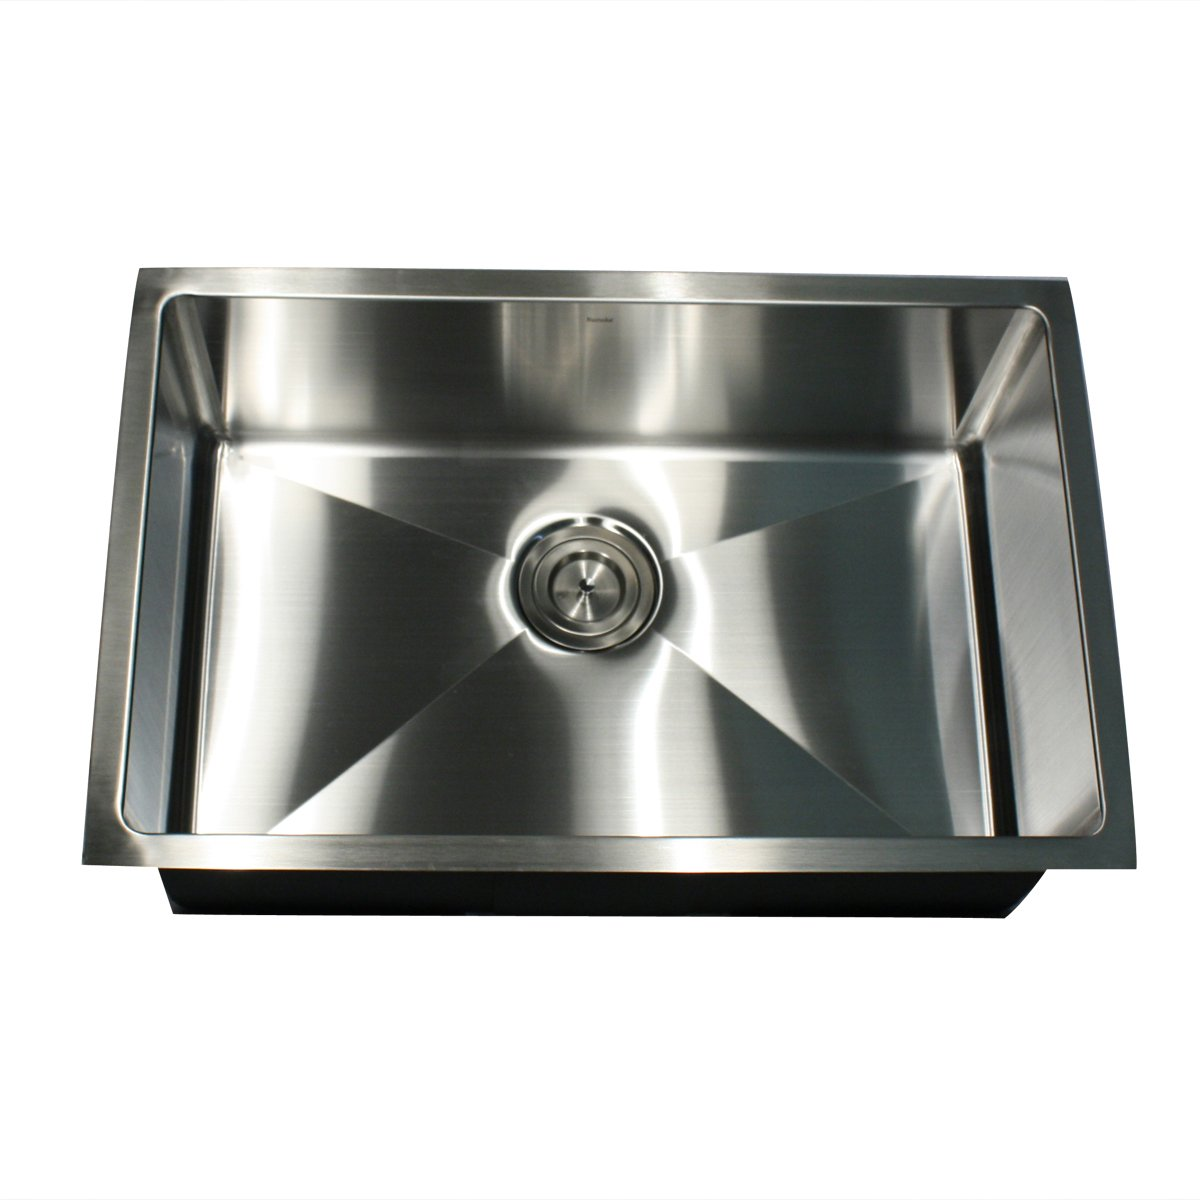 Genial Nantucket Sinks SR2818 16 Pro Series Rectangle Single Bowl Undermount Small  Radius Corners Stainless Steel Kitchen Sink, 16 Gauge     Amazon.com